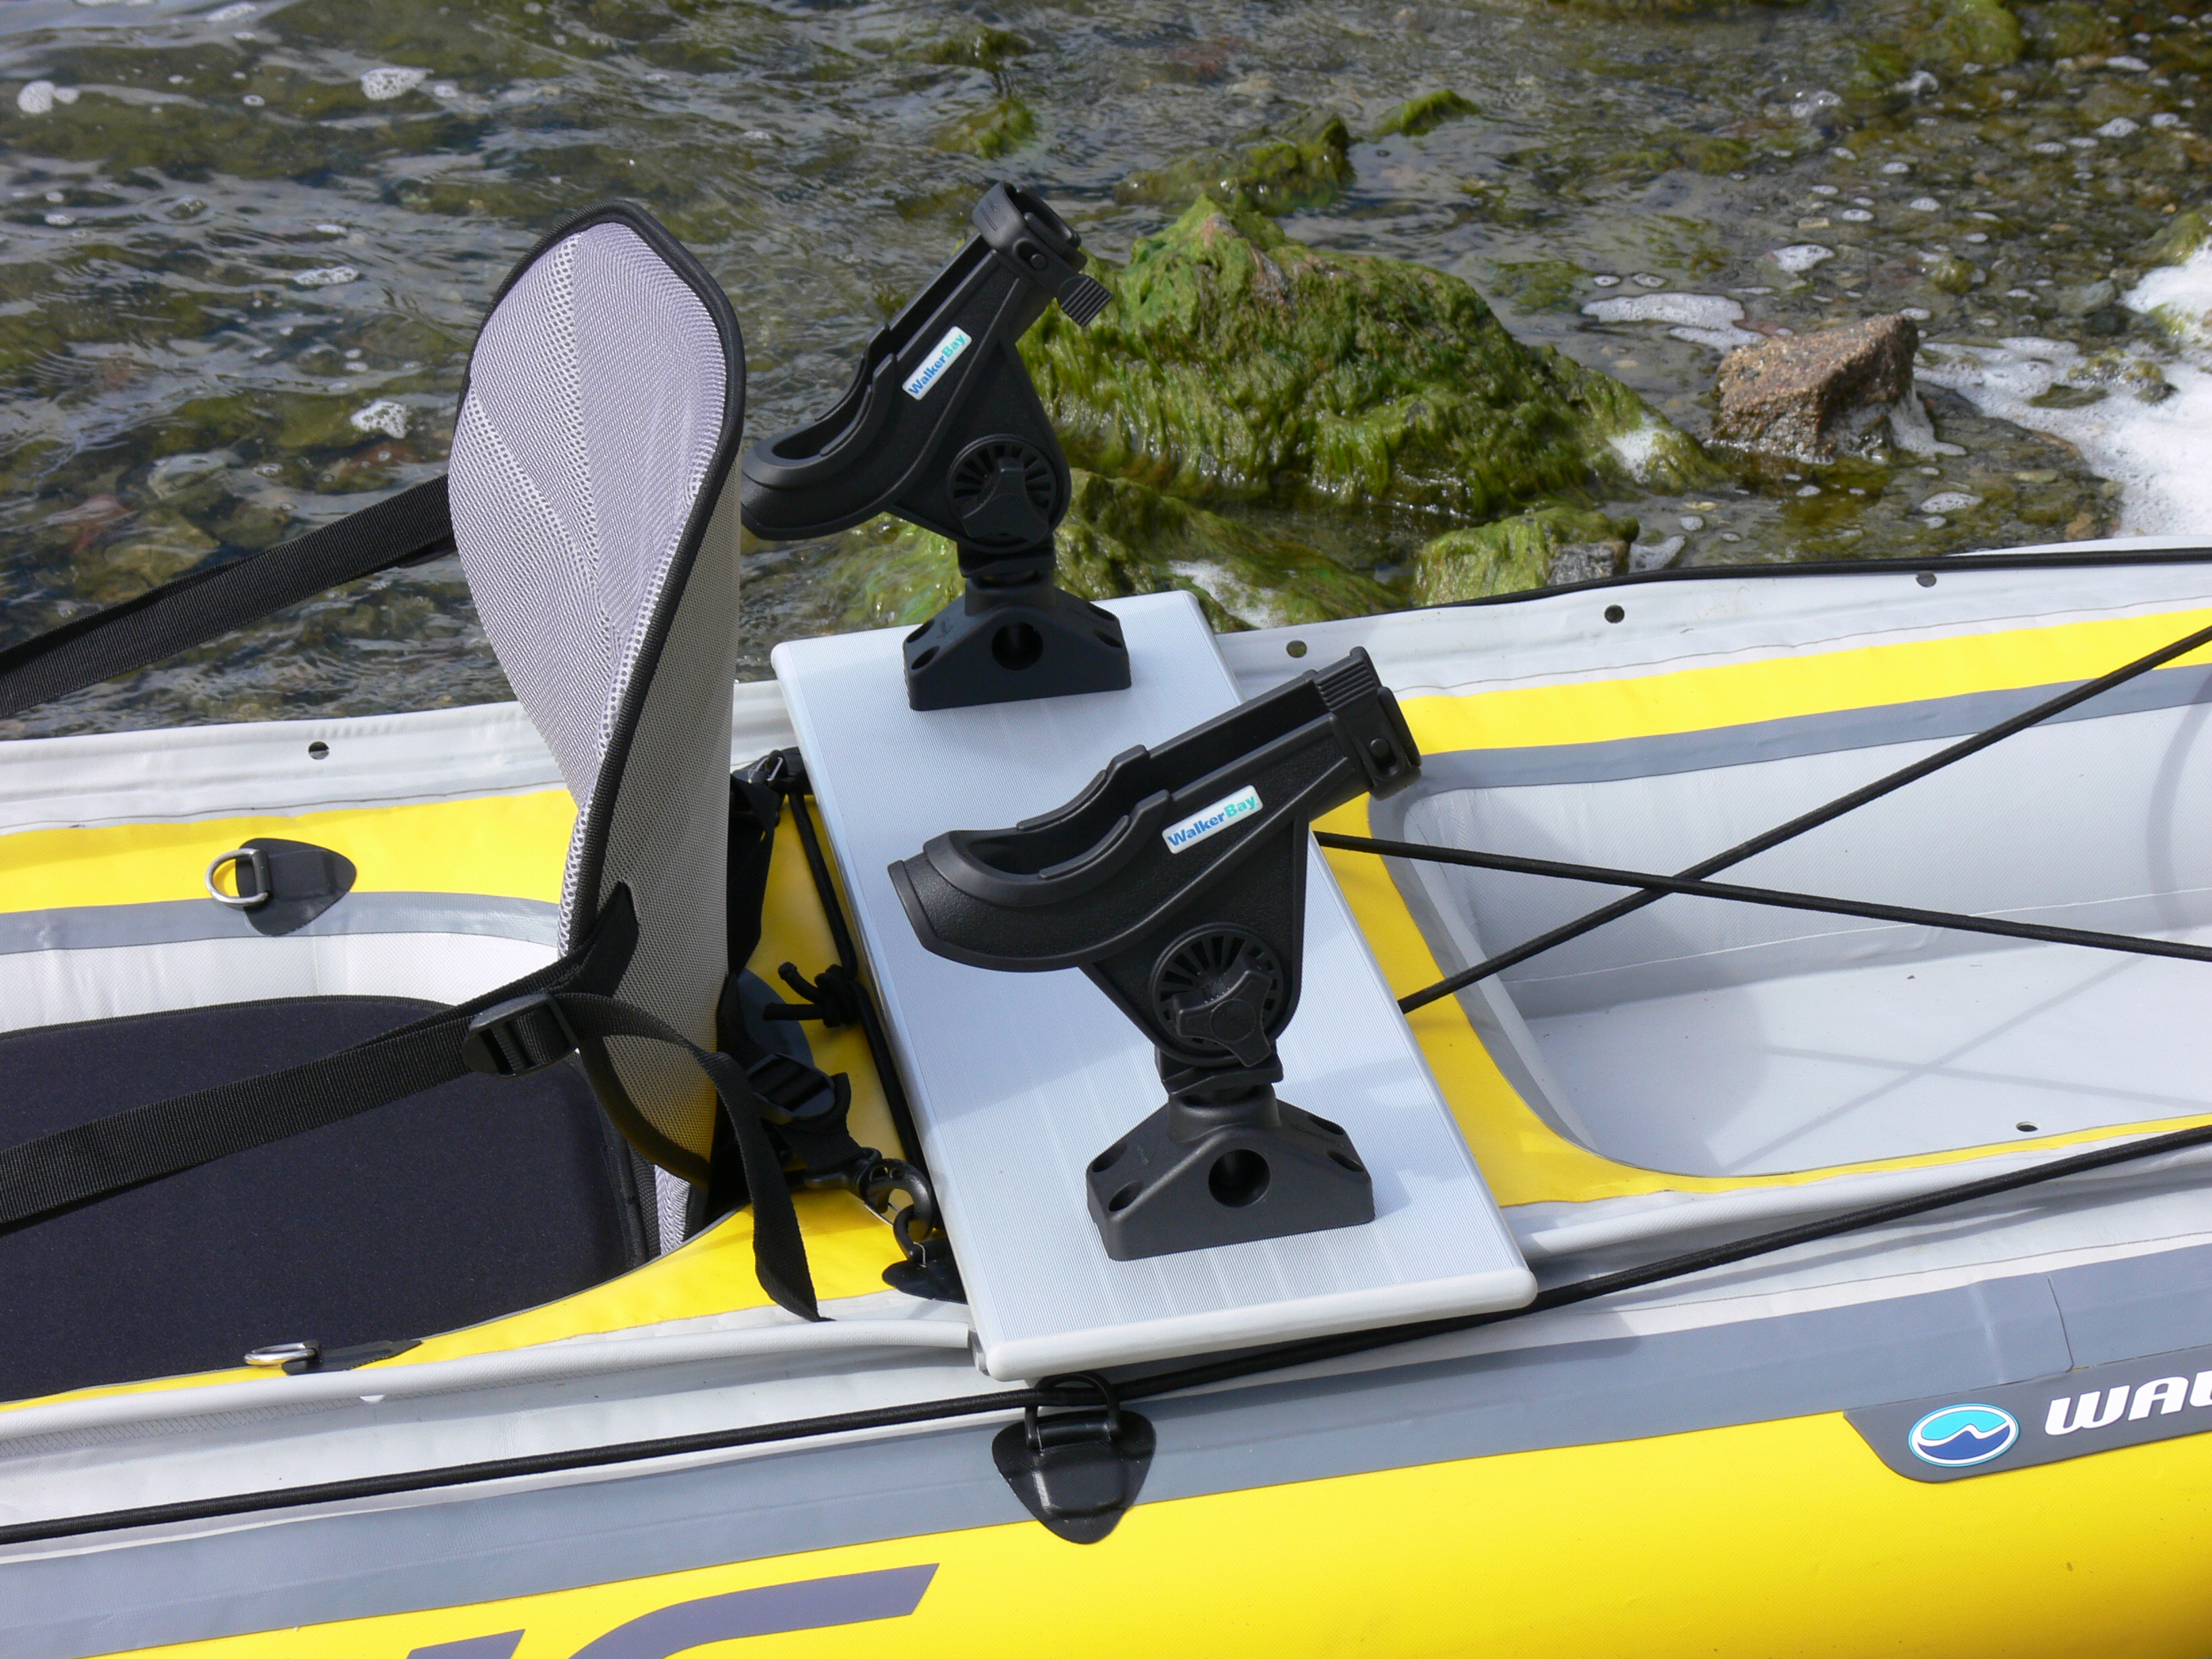 fishing chair with pole holder yoga routines the airis inflatable angler kayak from walker bay  not